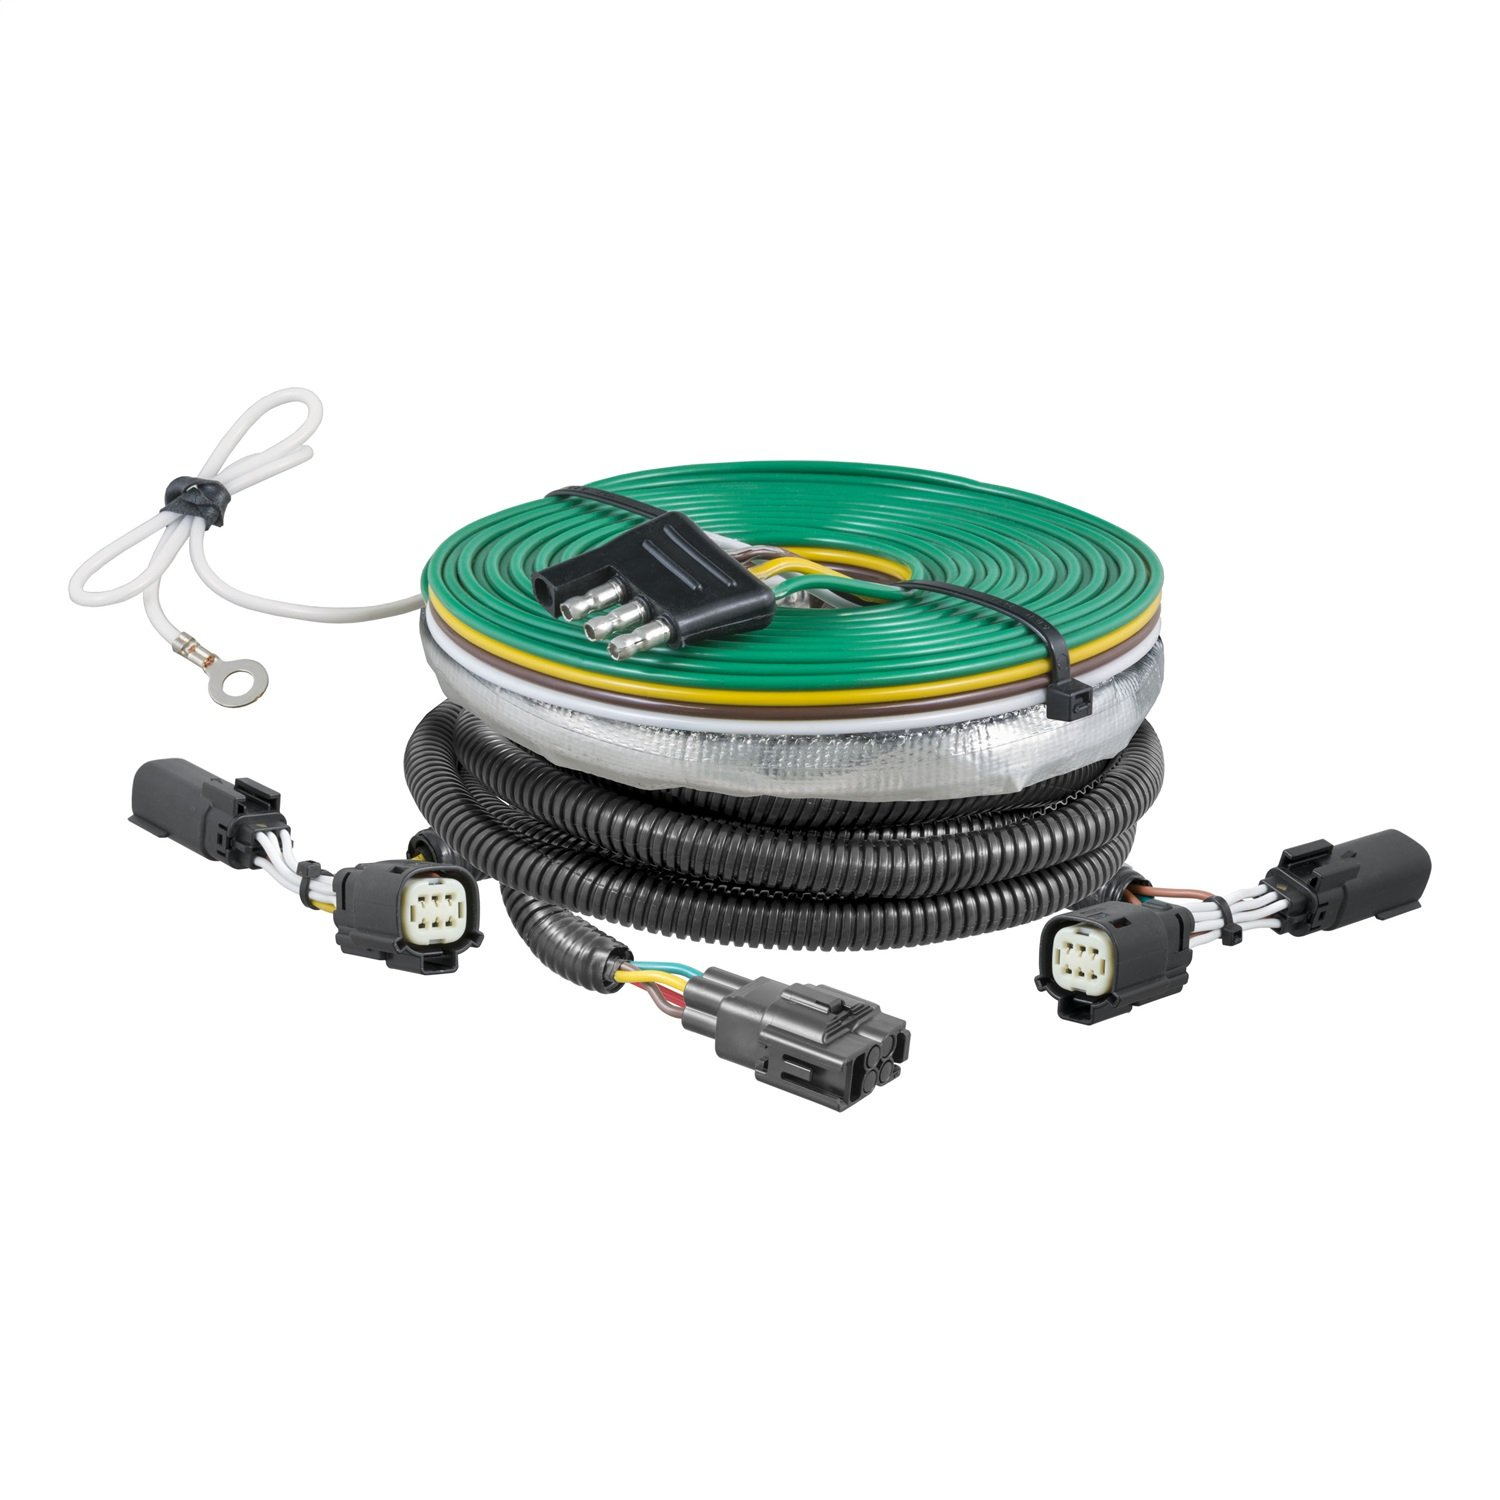 CURT 58941 Custom Towed-Vehicle RV Wiring Harness for Dinghy Towing Select Ford Flex